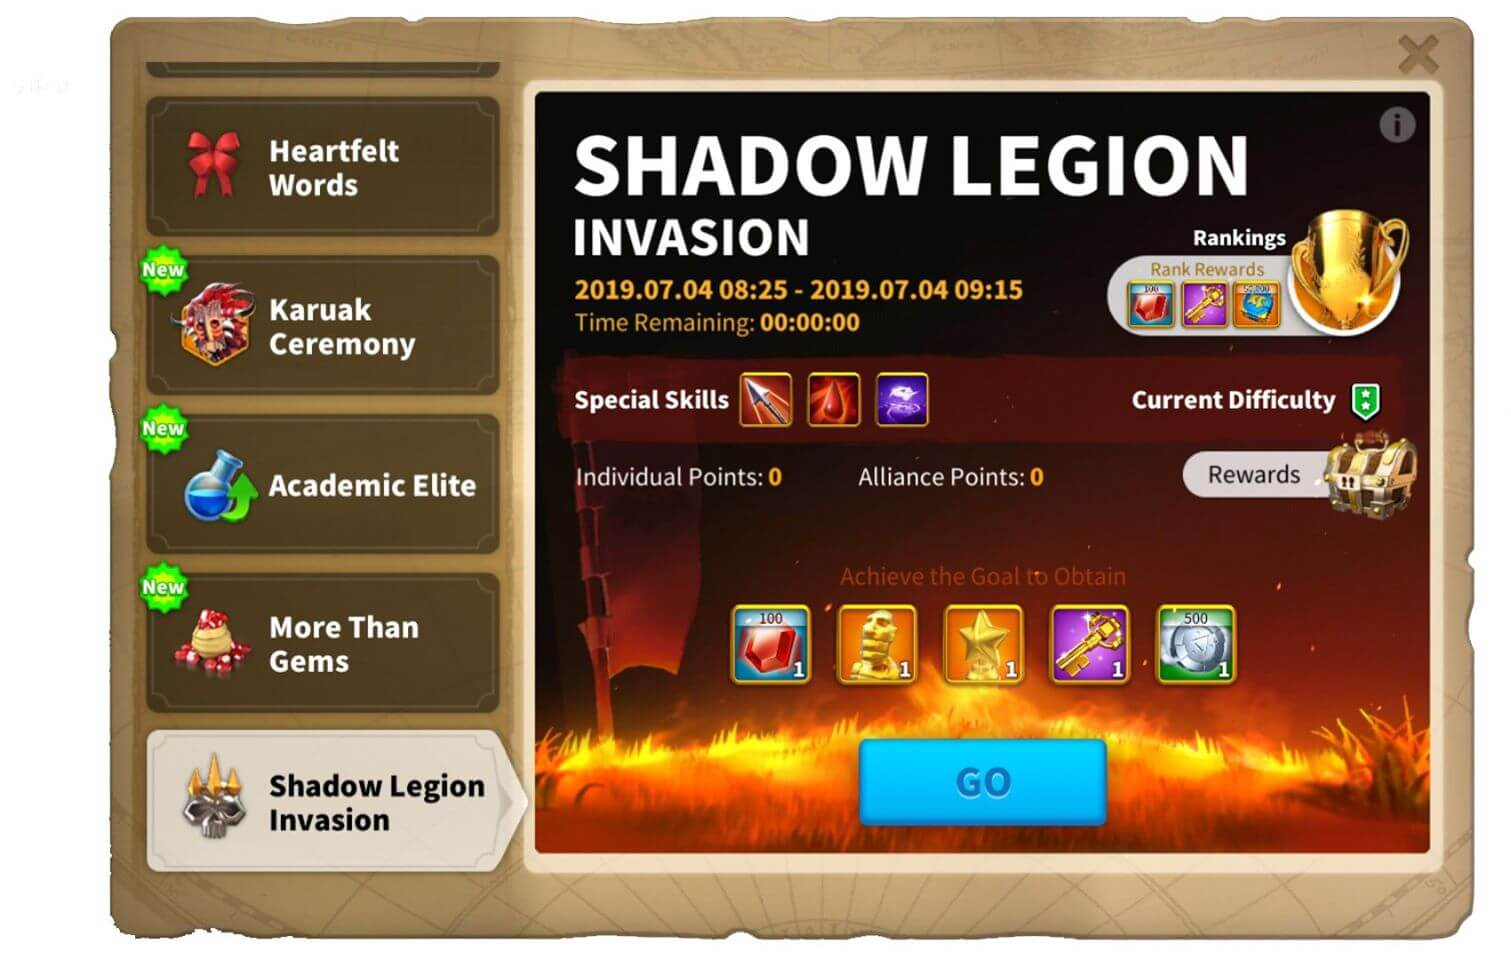 shadow legion event